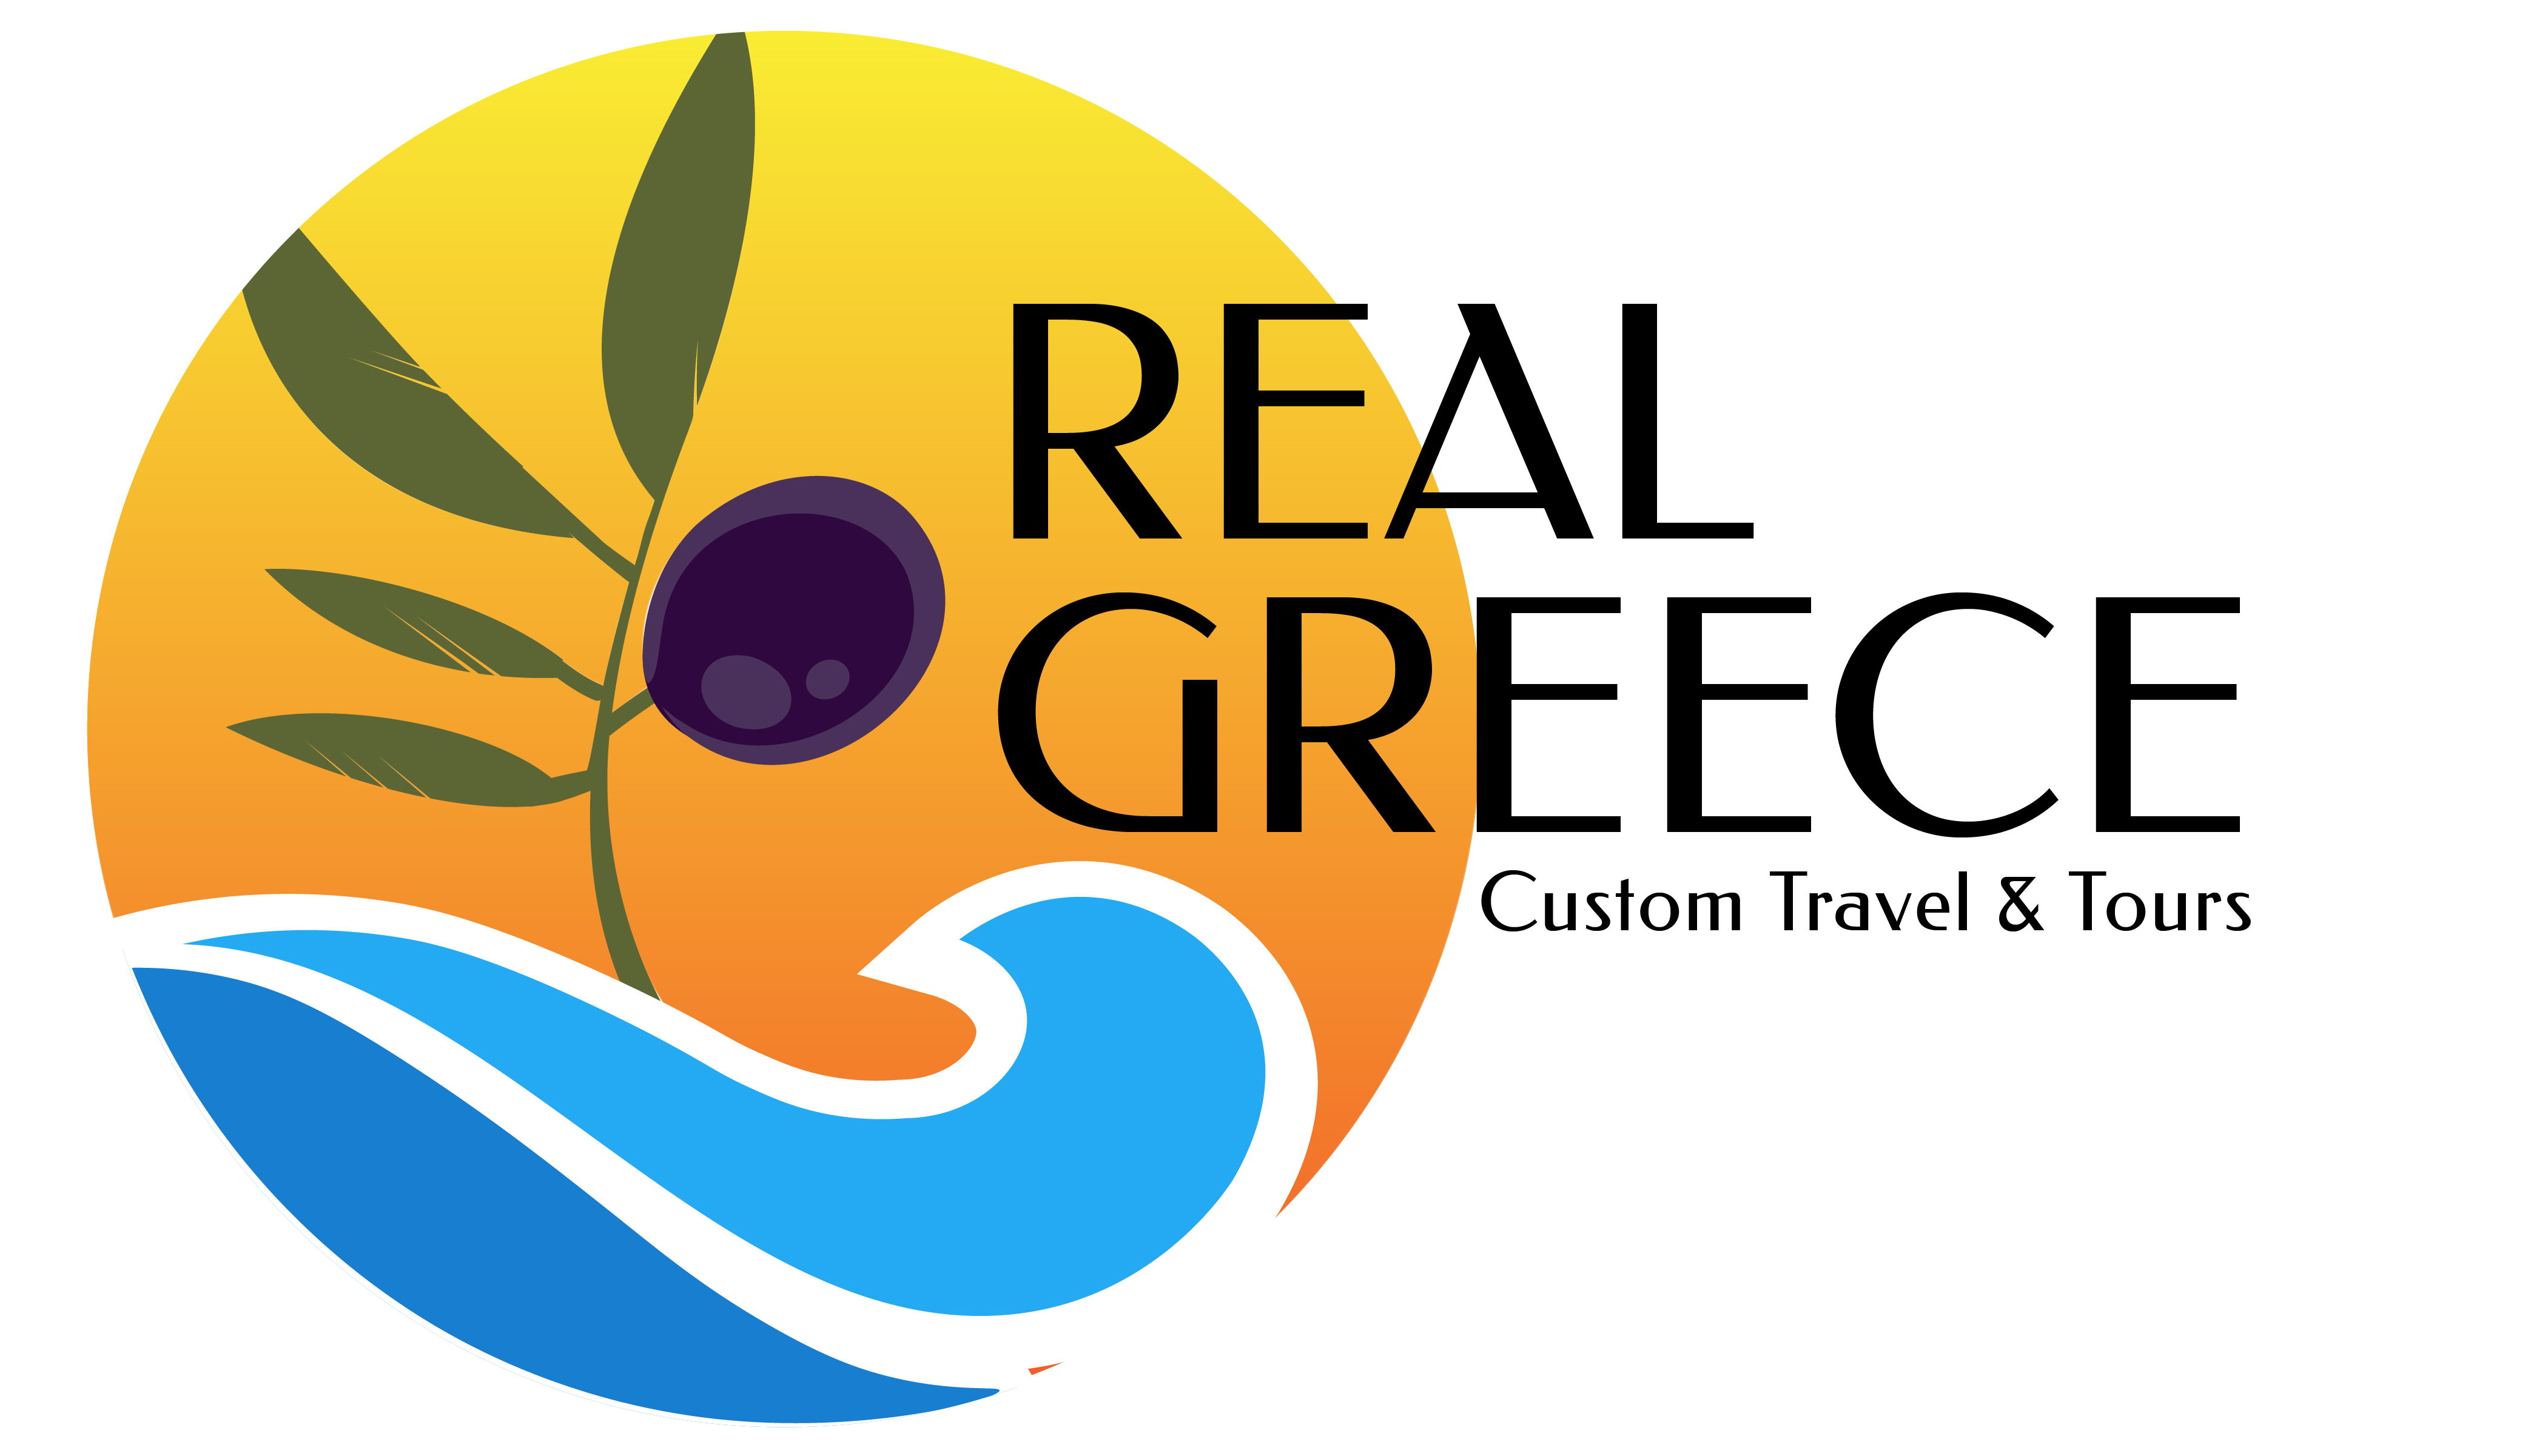 Real Greece Travel & Tours